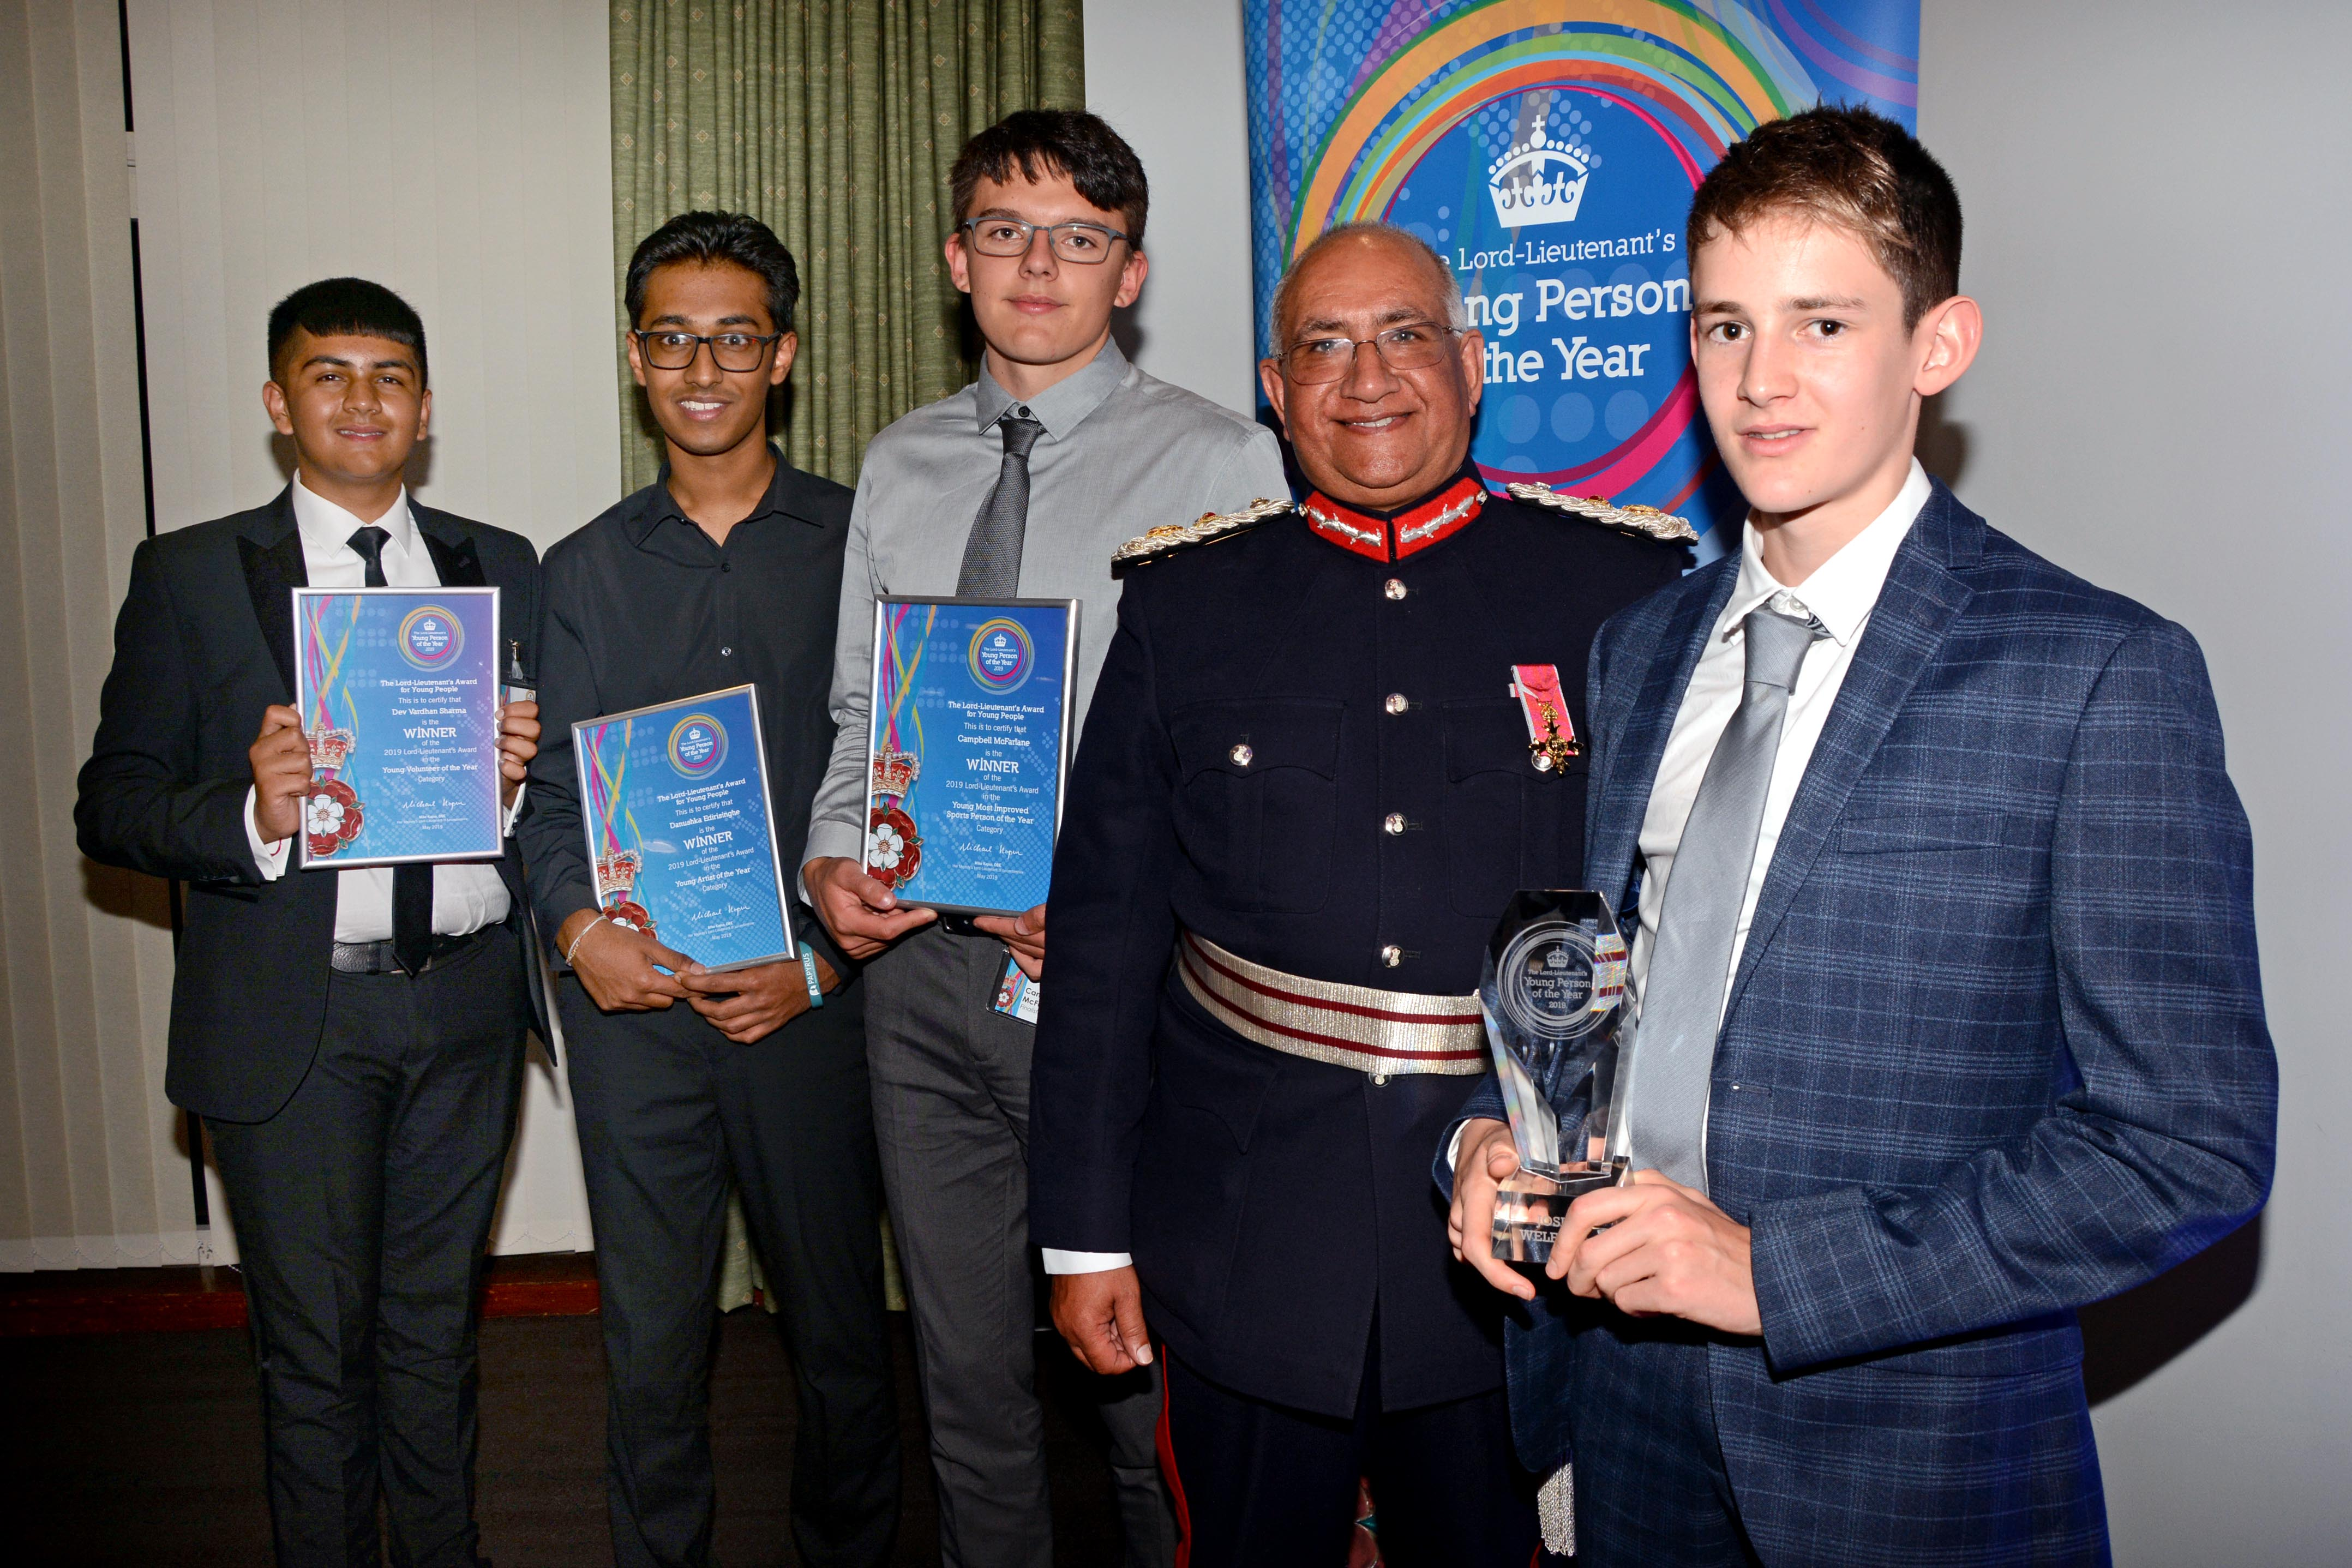 The category winners from The Lord-Lieutenant's Award for Young People 2019